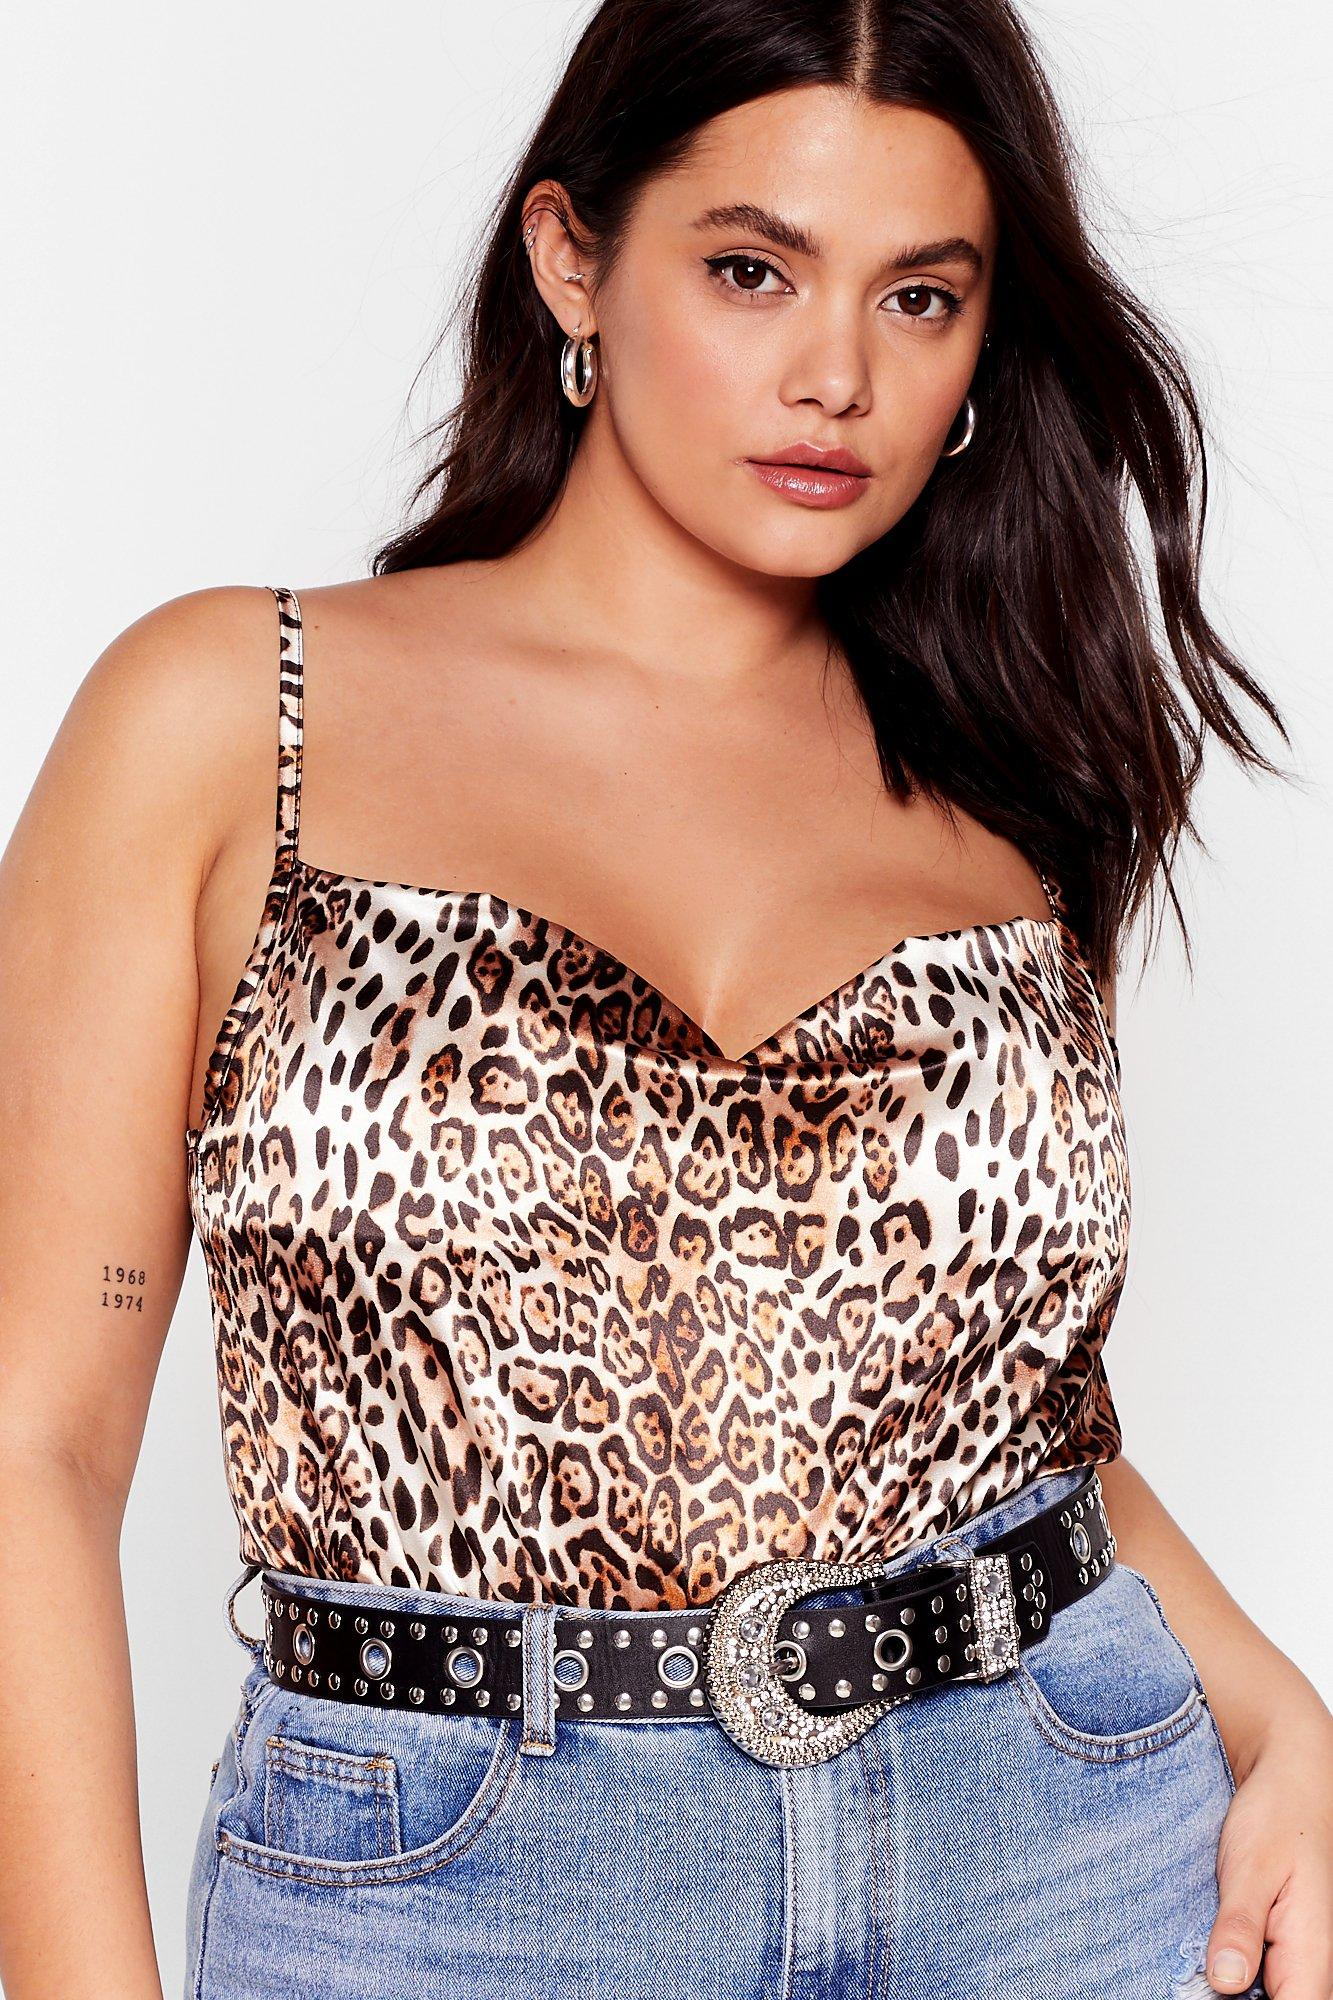 Always Wanting Roar Satin Leopard Bodysuit 9